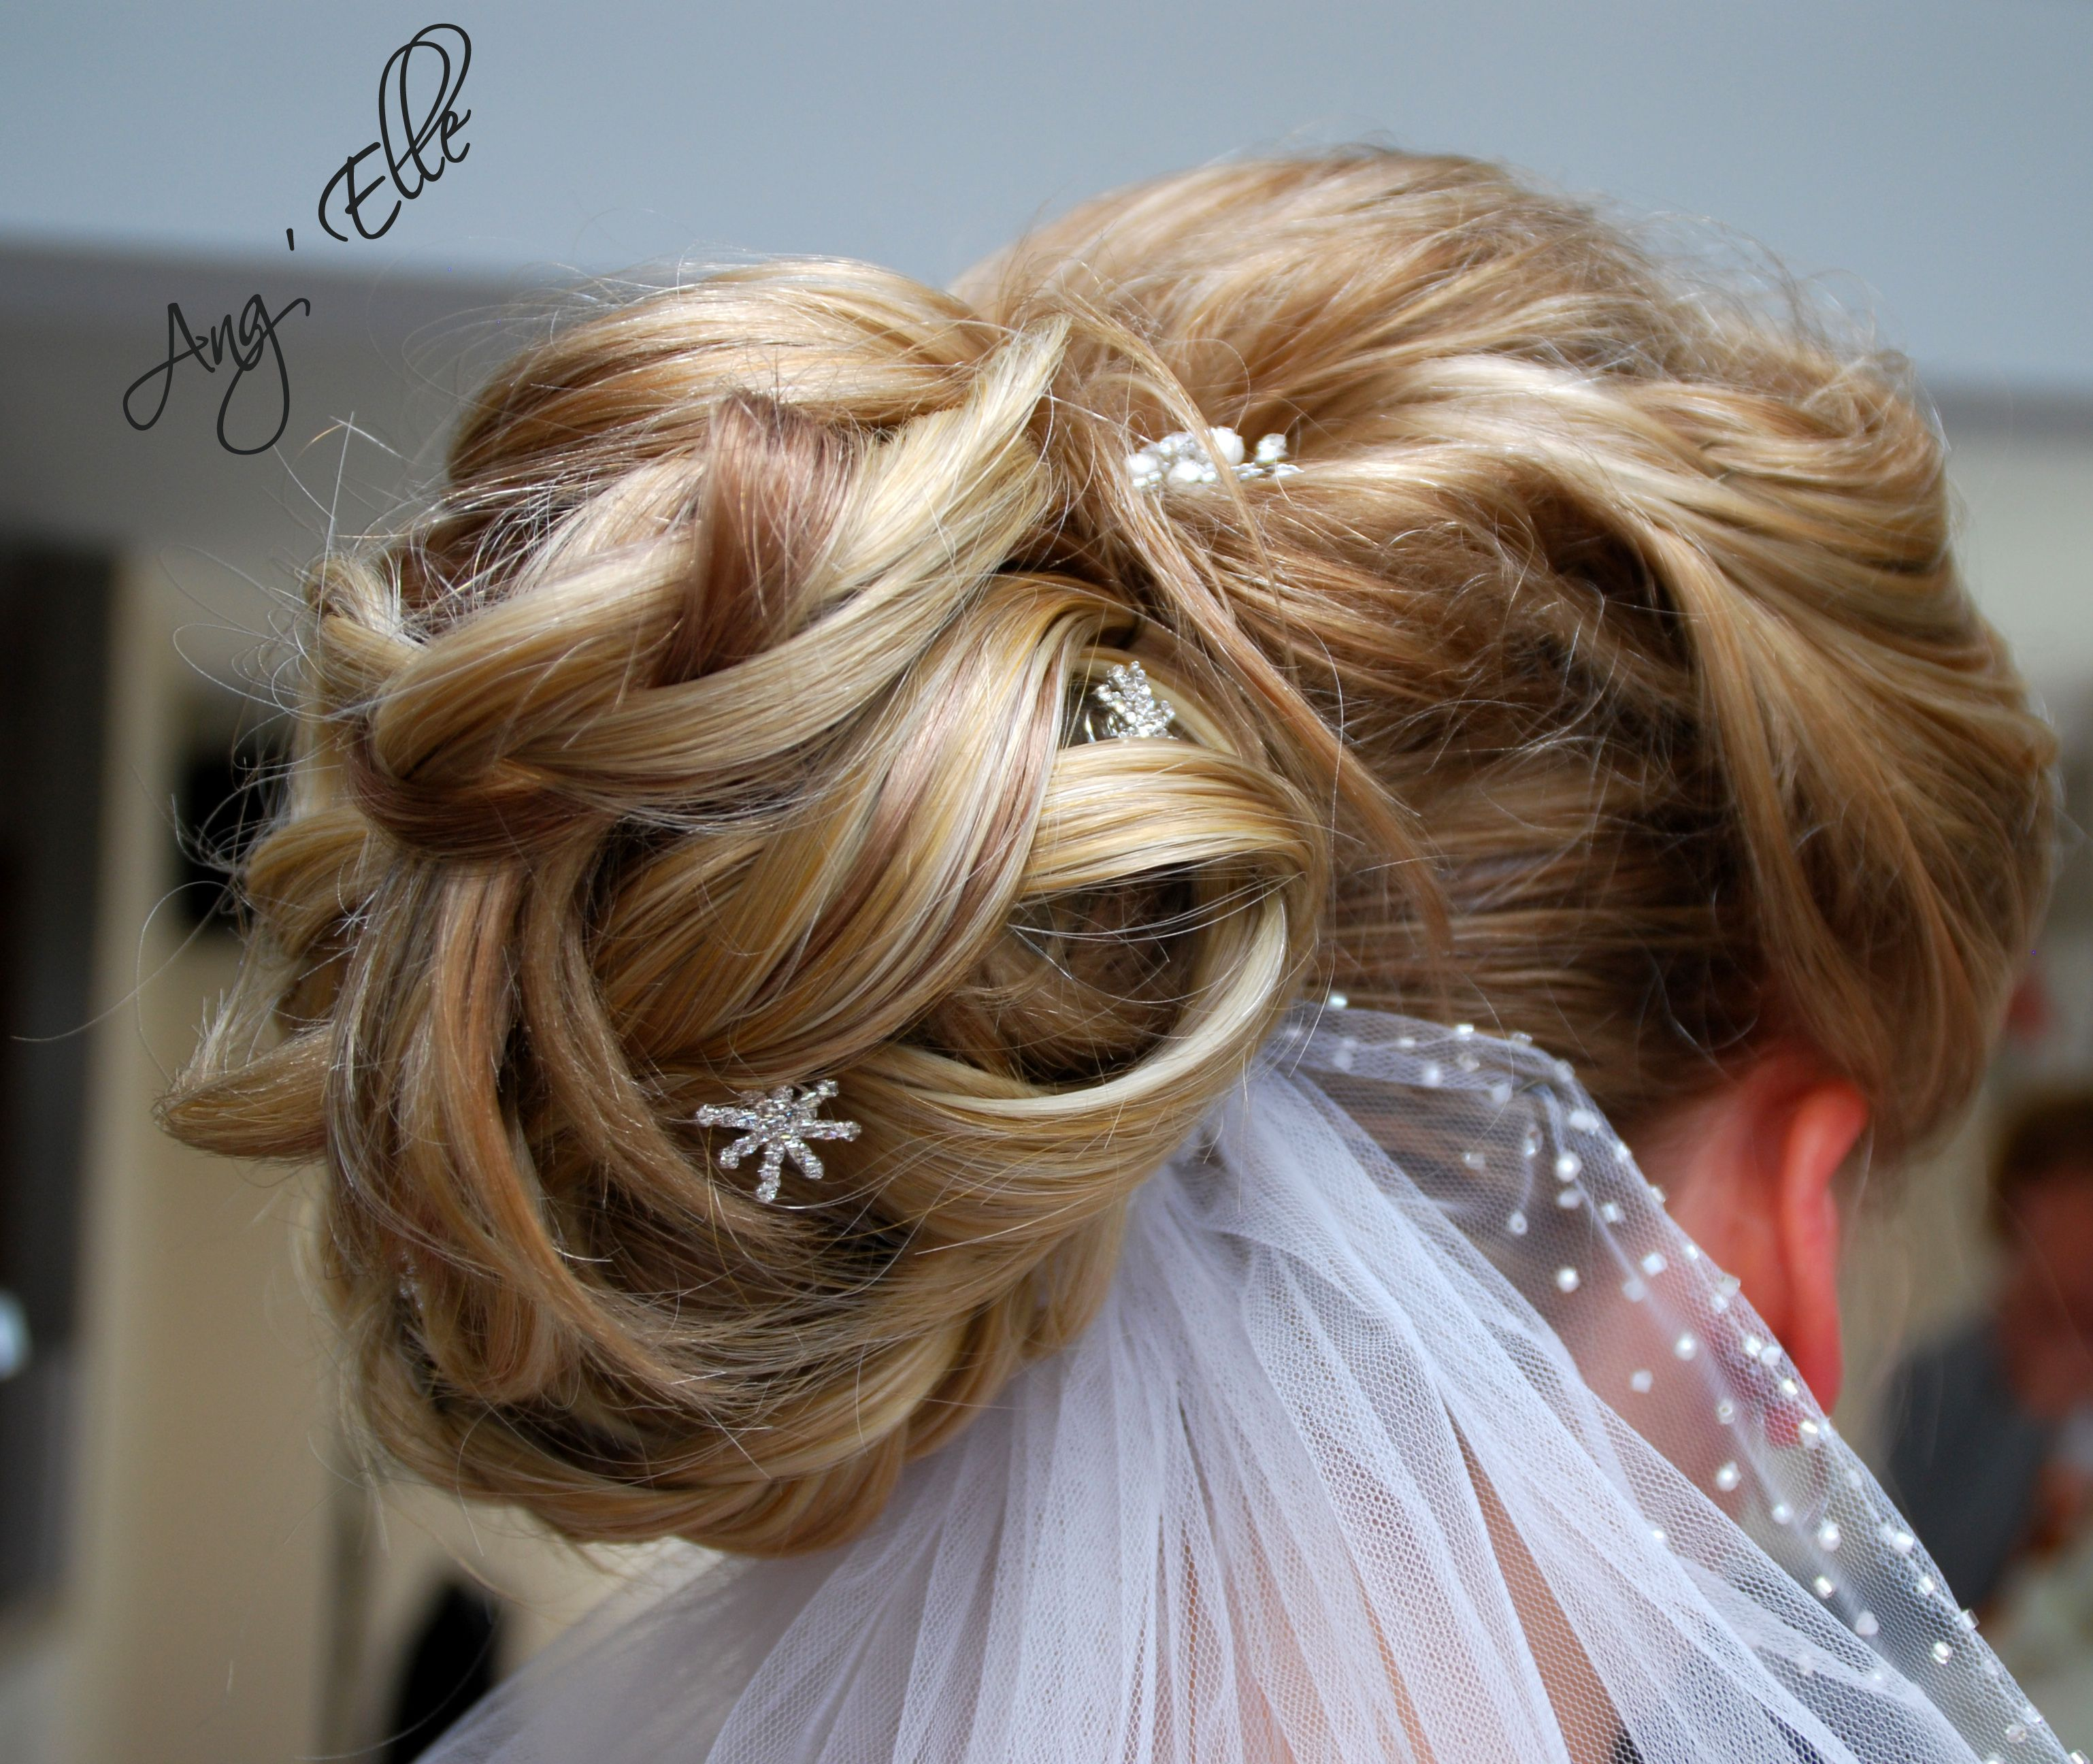 Création coiffure mariage avec voile & strass Coiffure